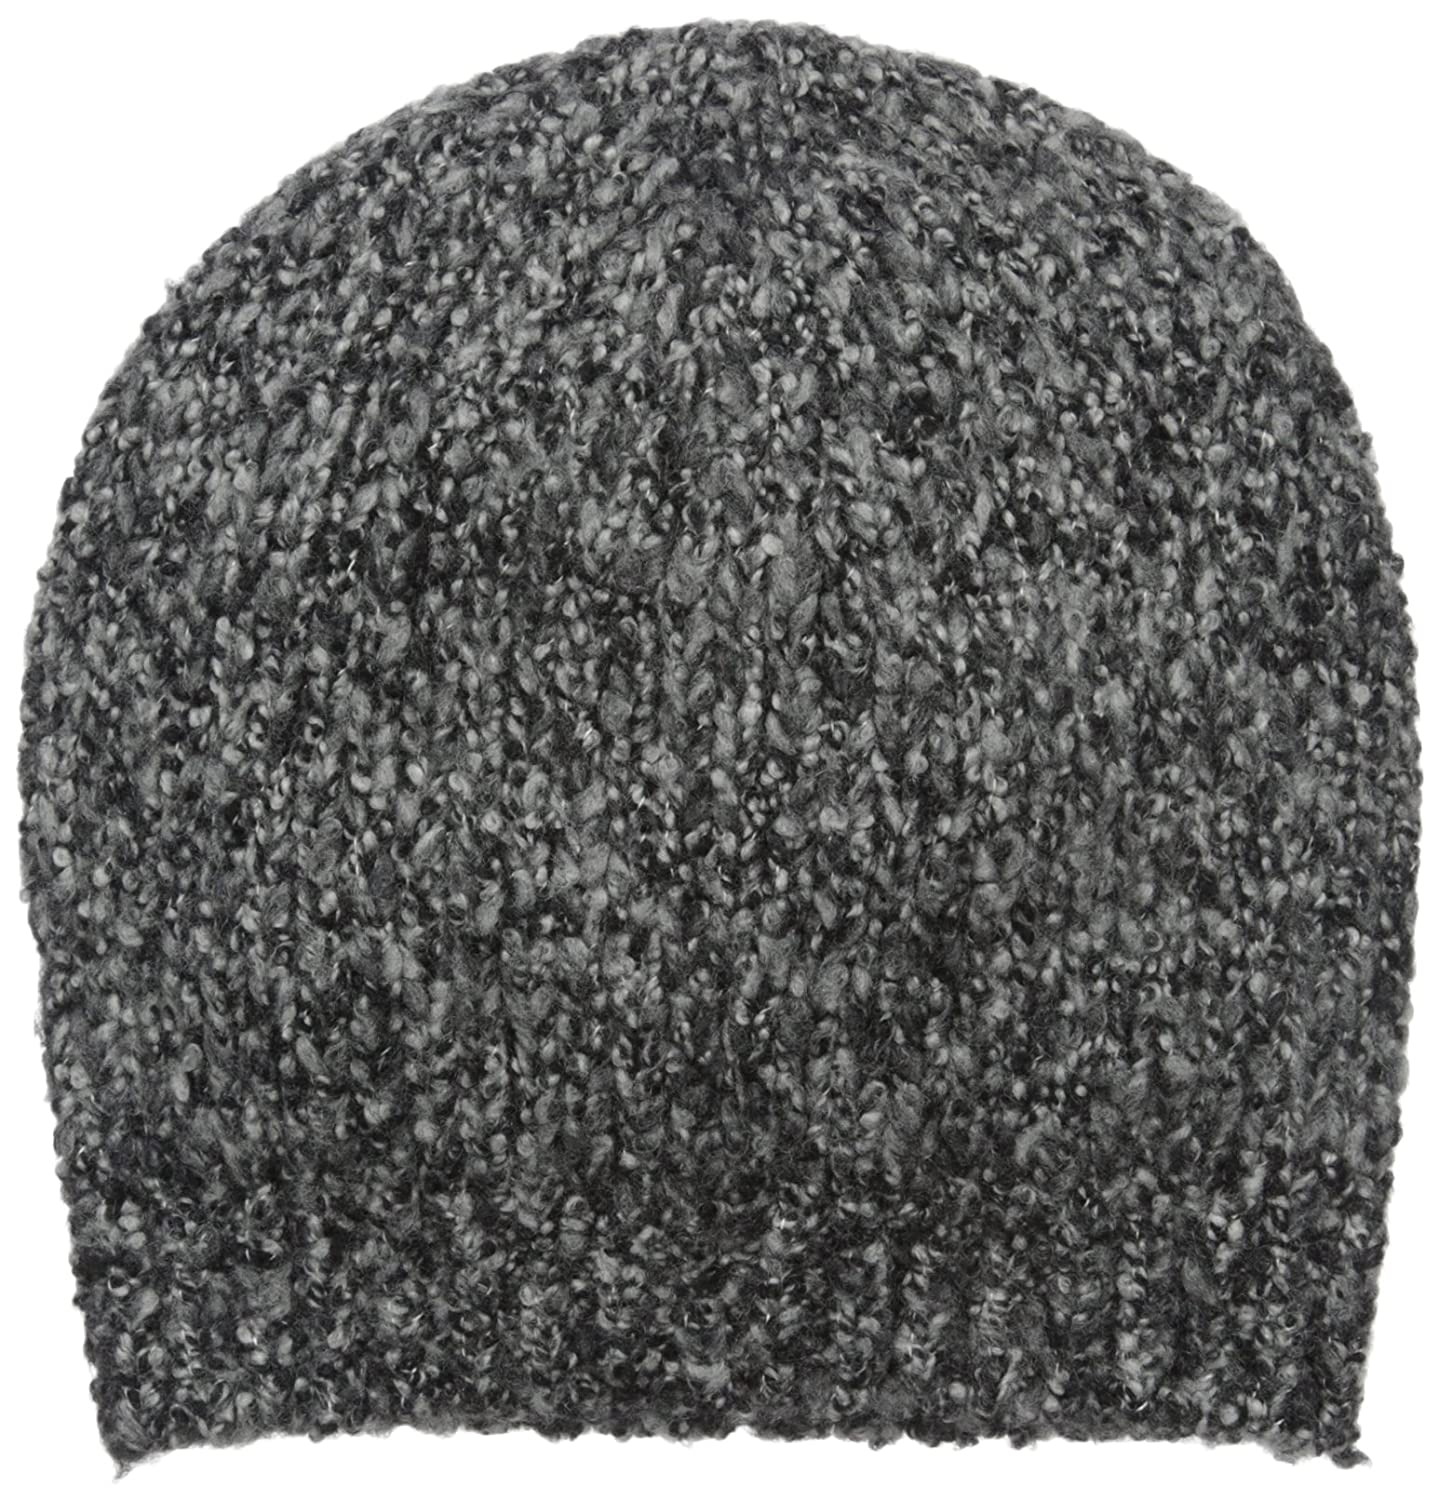 Vince Women's Marl Beanie, Vince Women's Marl Beanie Grey/Charcoal One Size Vince Womens RTW child code